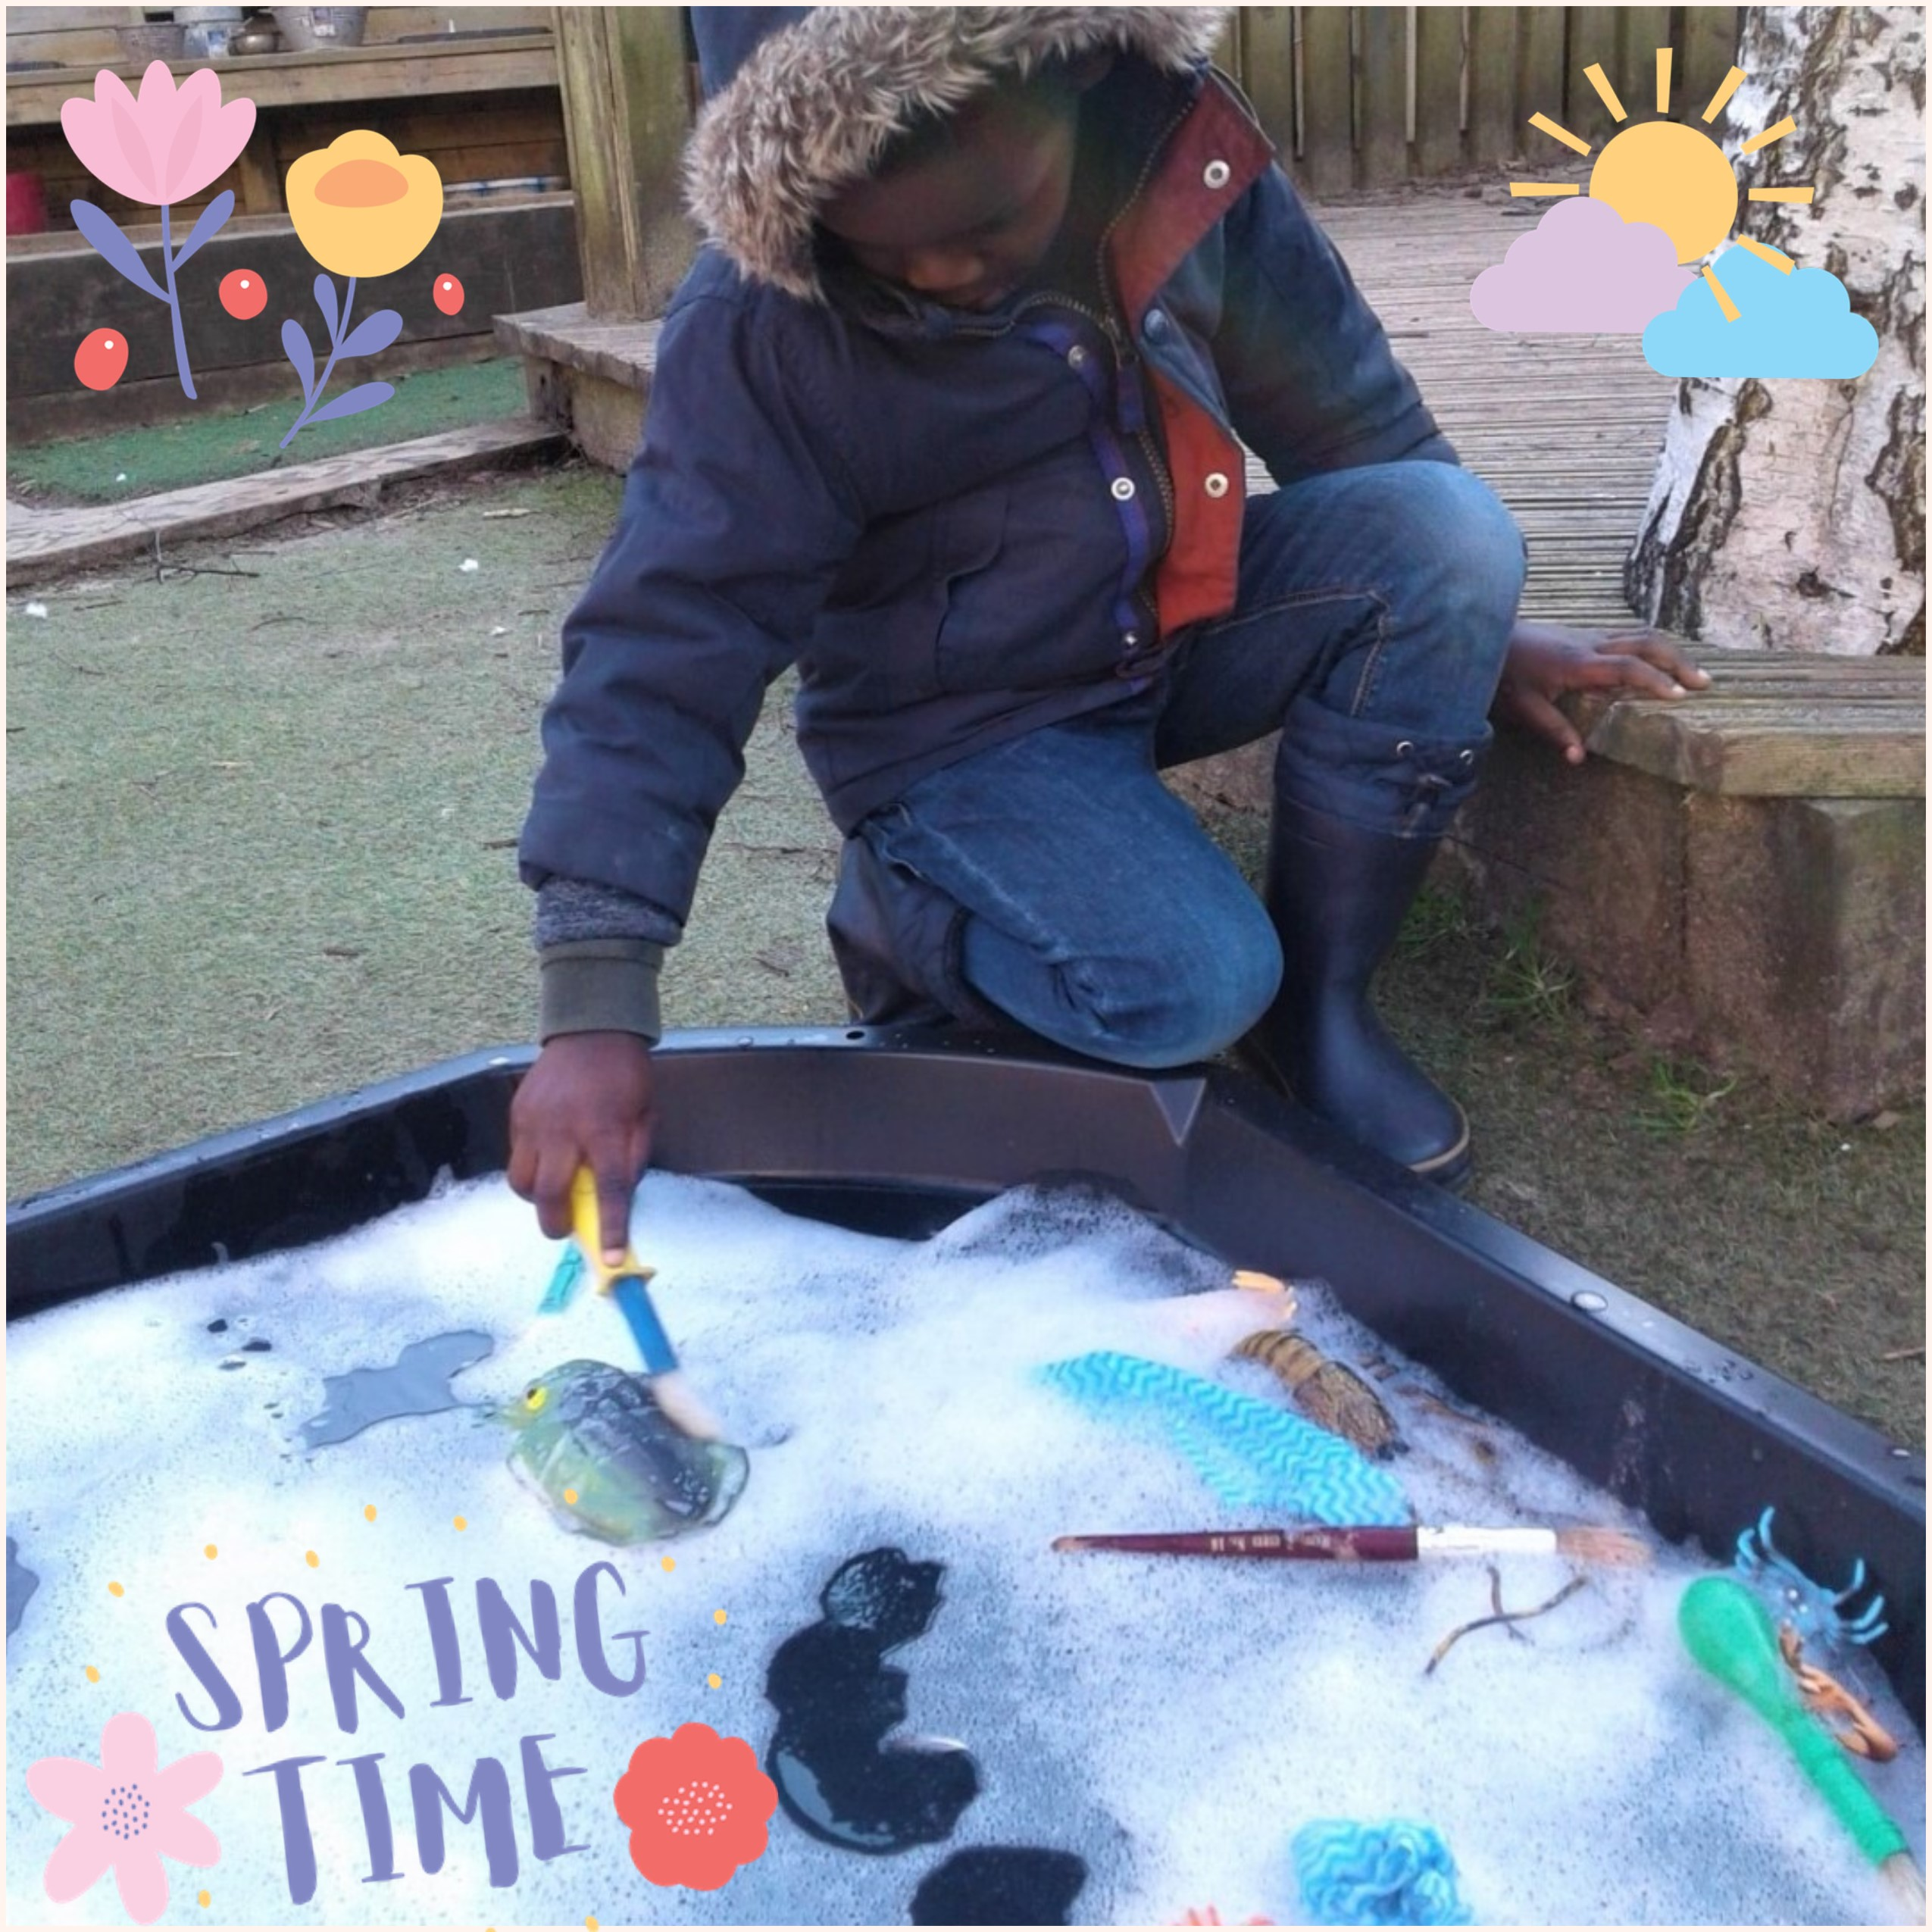 Shooting Stars have been enjoying the beautiful Spring sunshine in our garden this week and taking full advantage of the weather by exploring lots of water play activities.